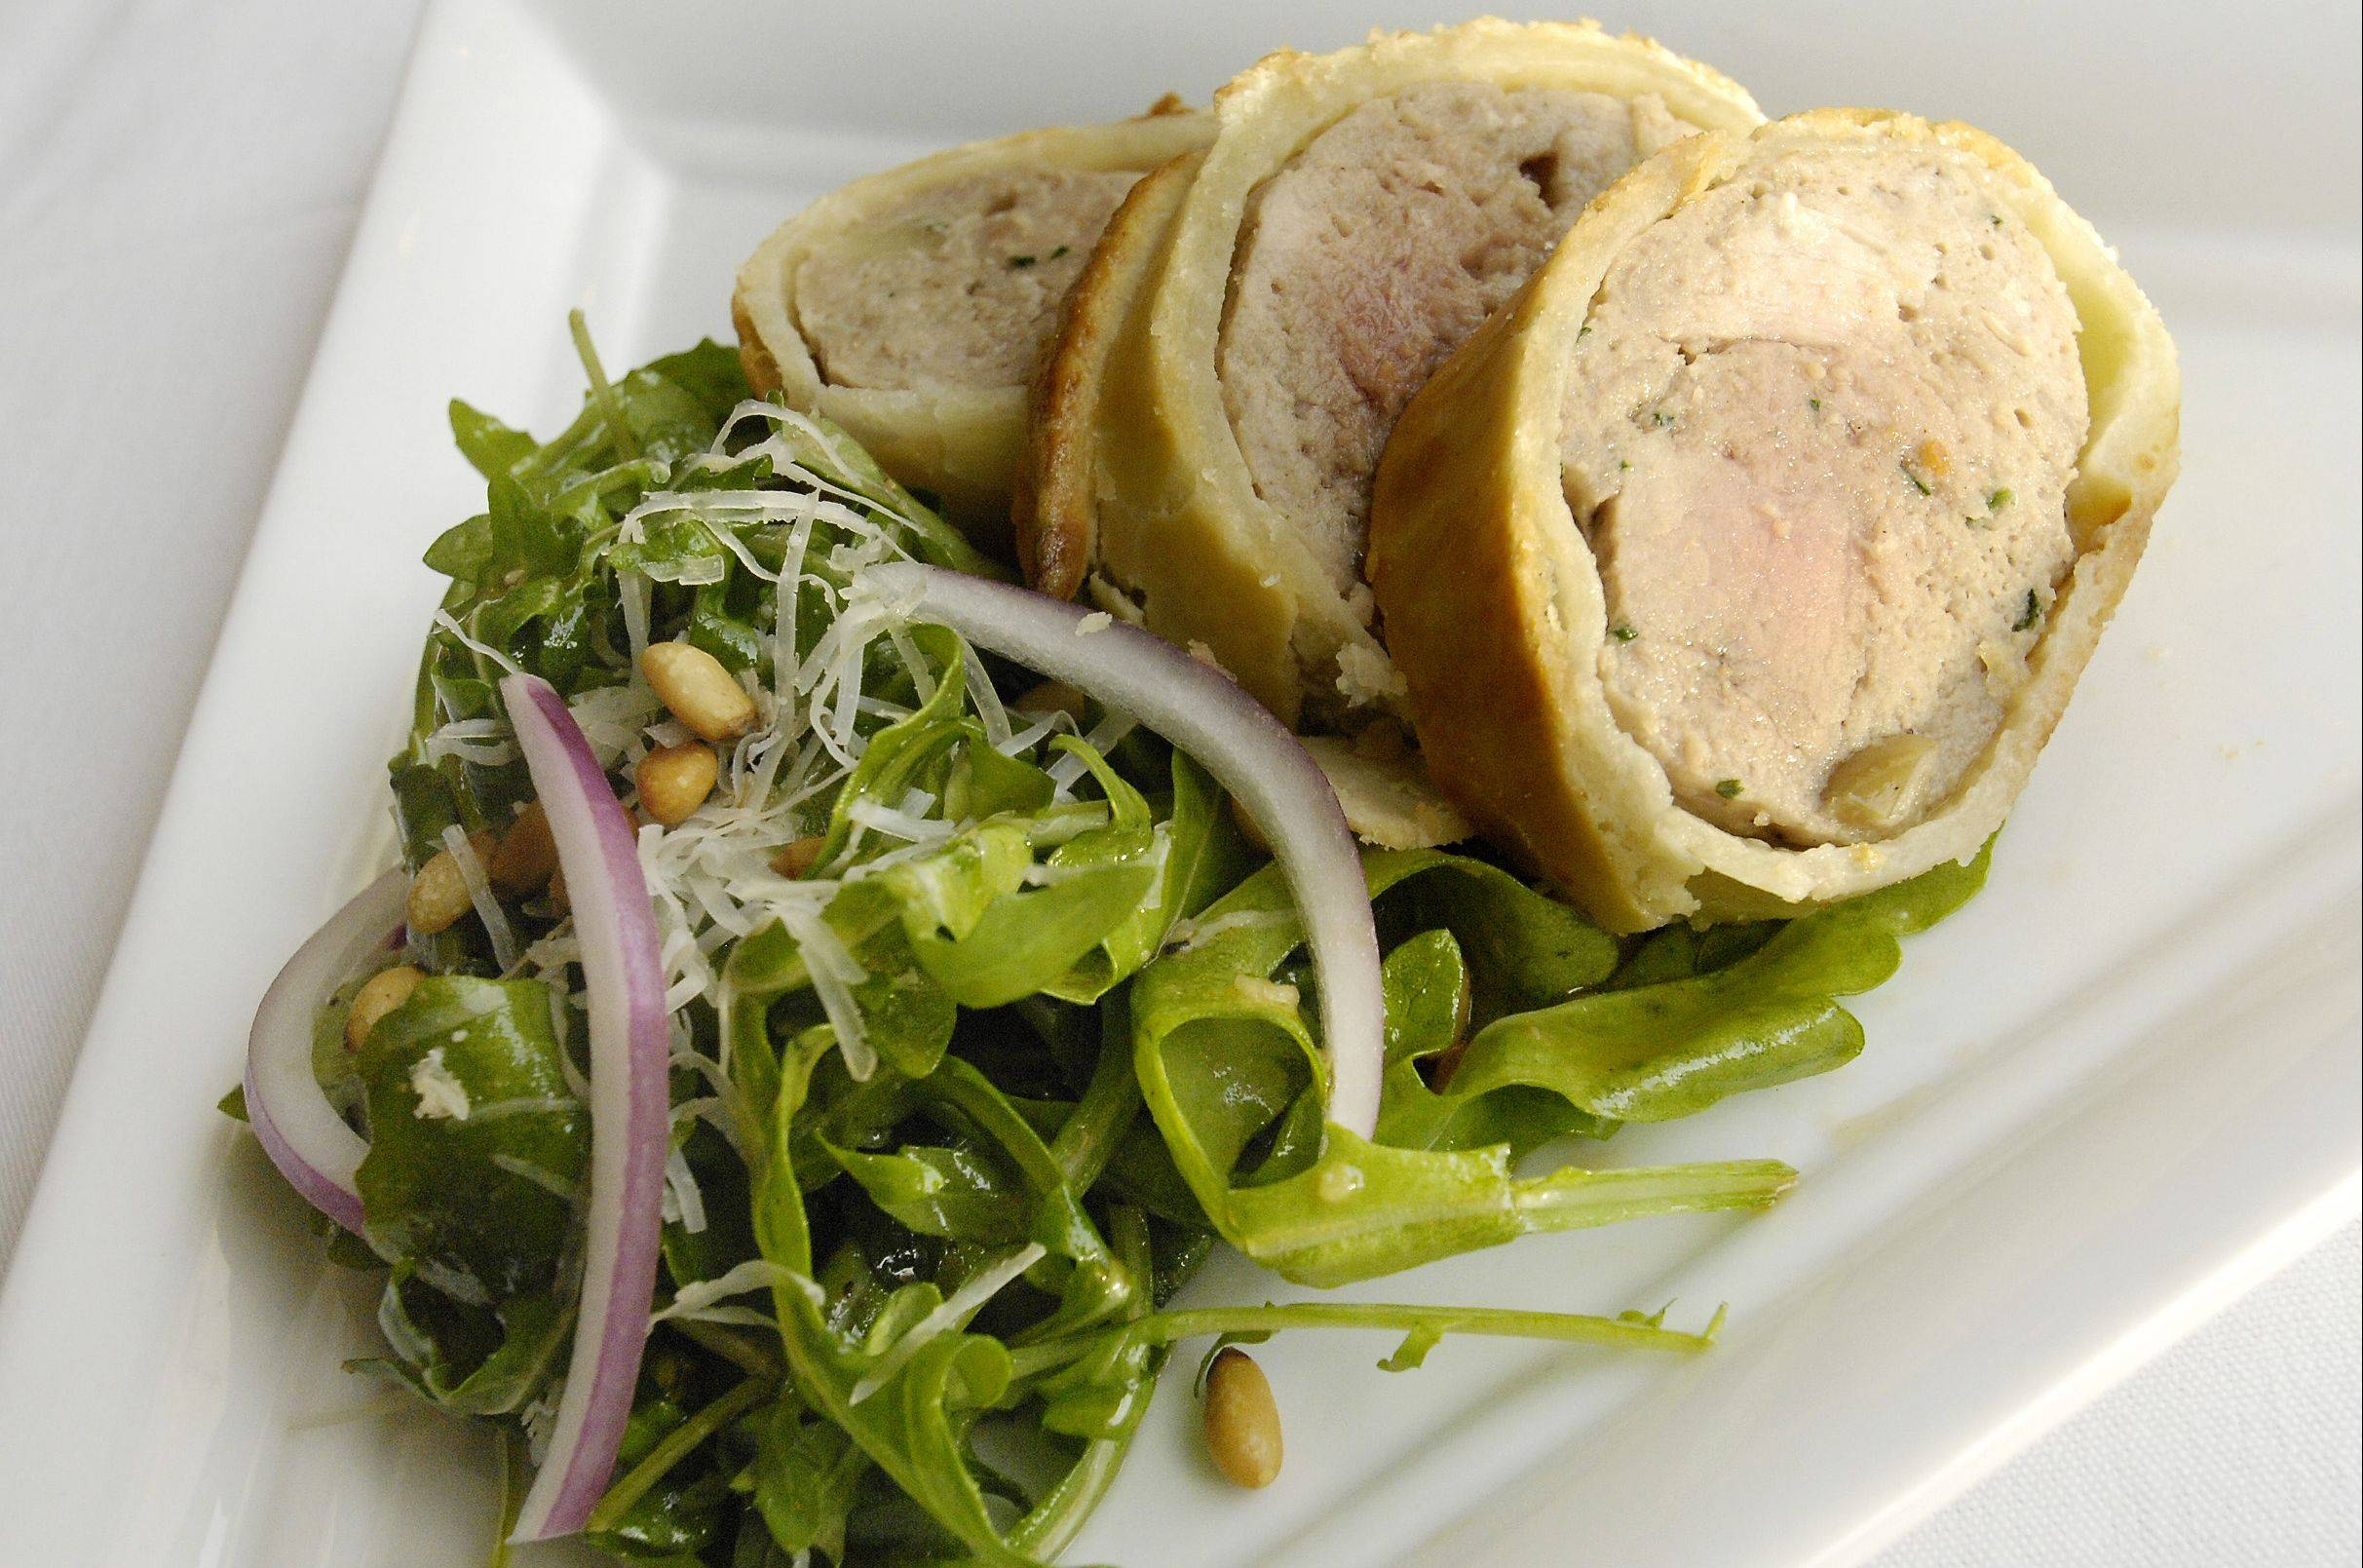 The European Ryder Cup team will be dining on Pork and Apple Sausage en Croute and Rocket Salad, above, that Medinah Country Club Executive Chef Bryan Panico created for the tournament.